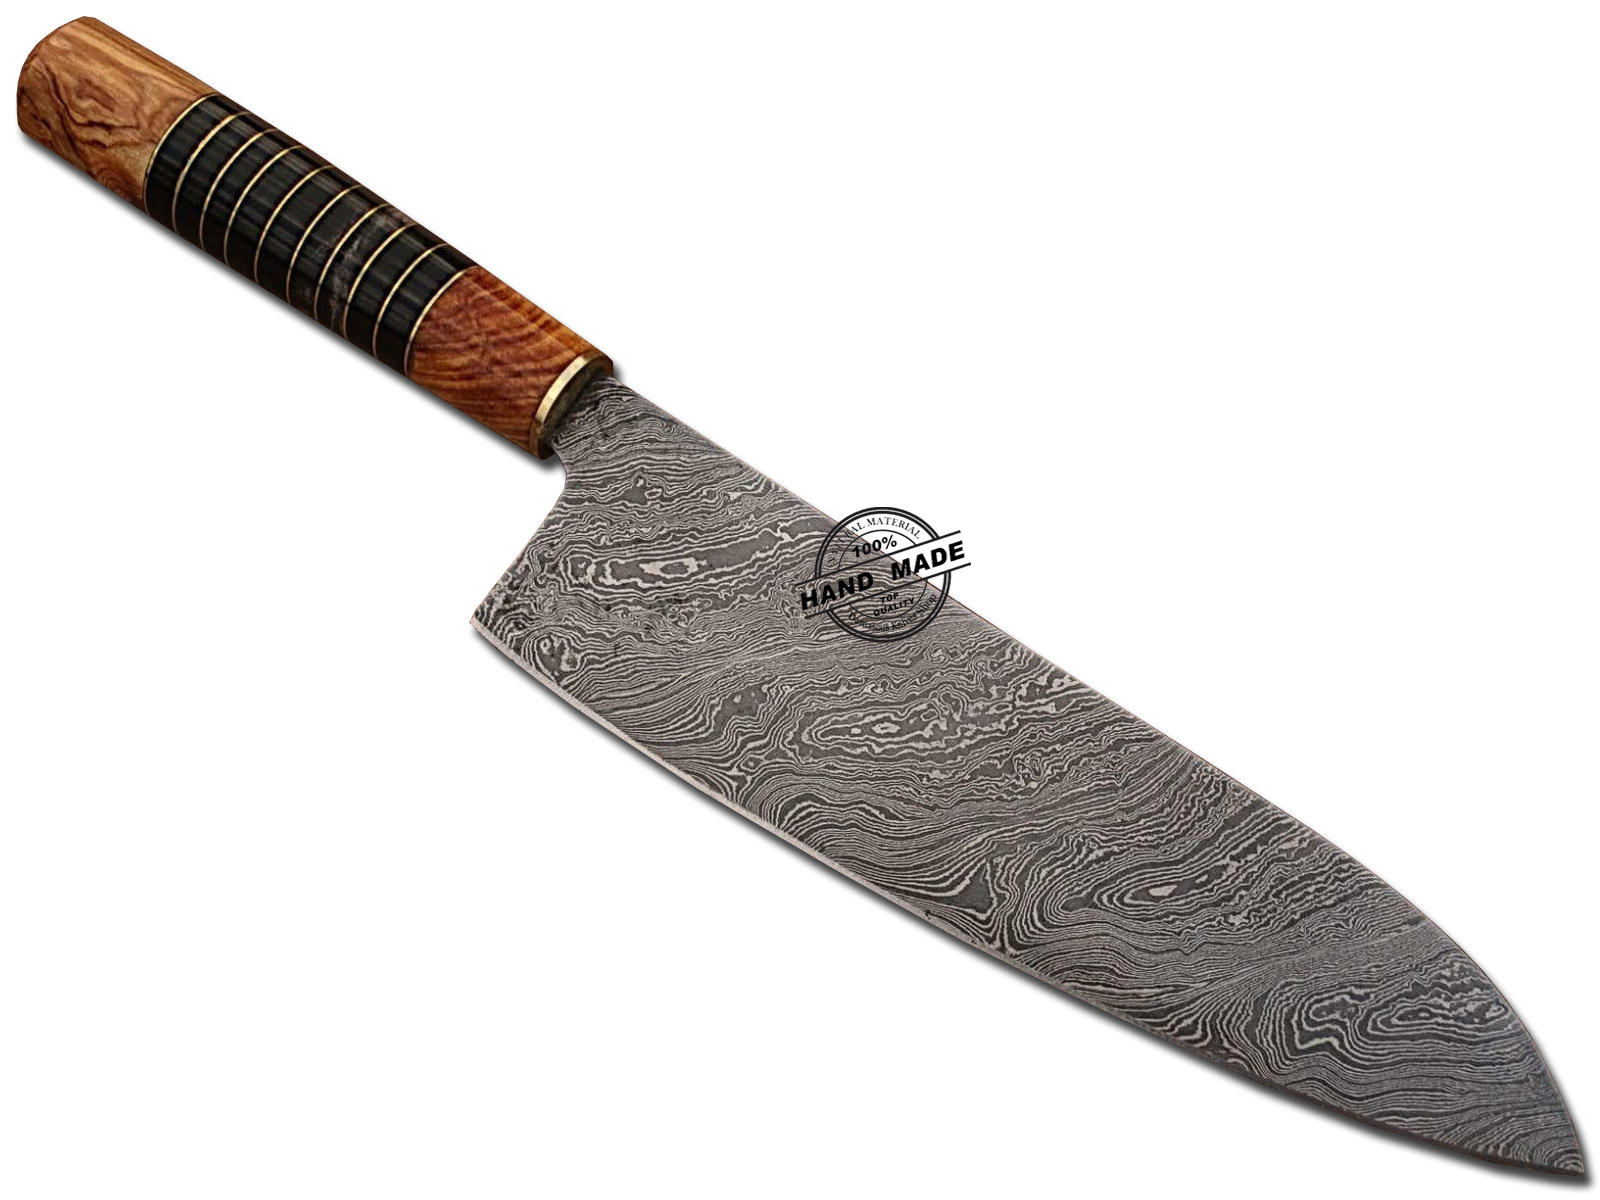 damascus chef knife custom handmade damascus steel kitchen knife. Black Bedroom Furniture Sets. Home Design Ideas